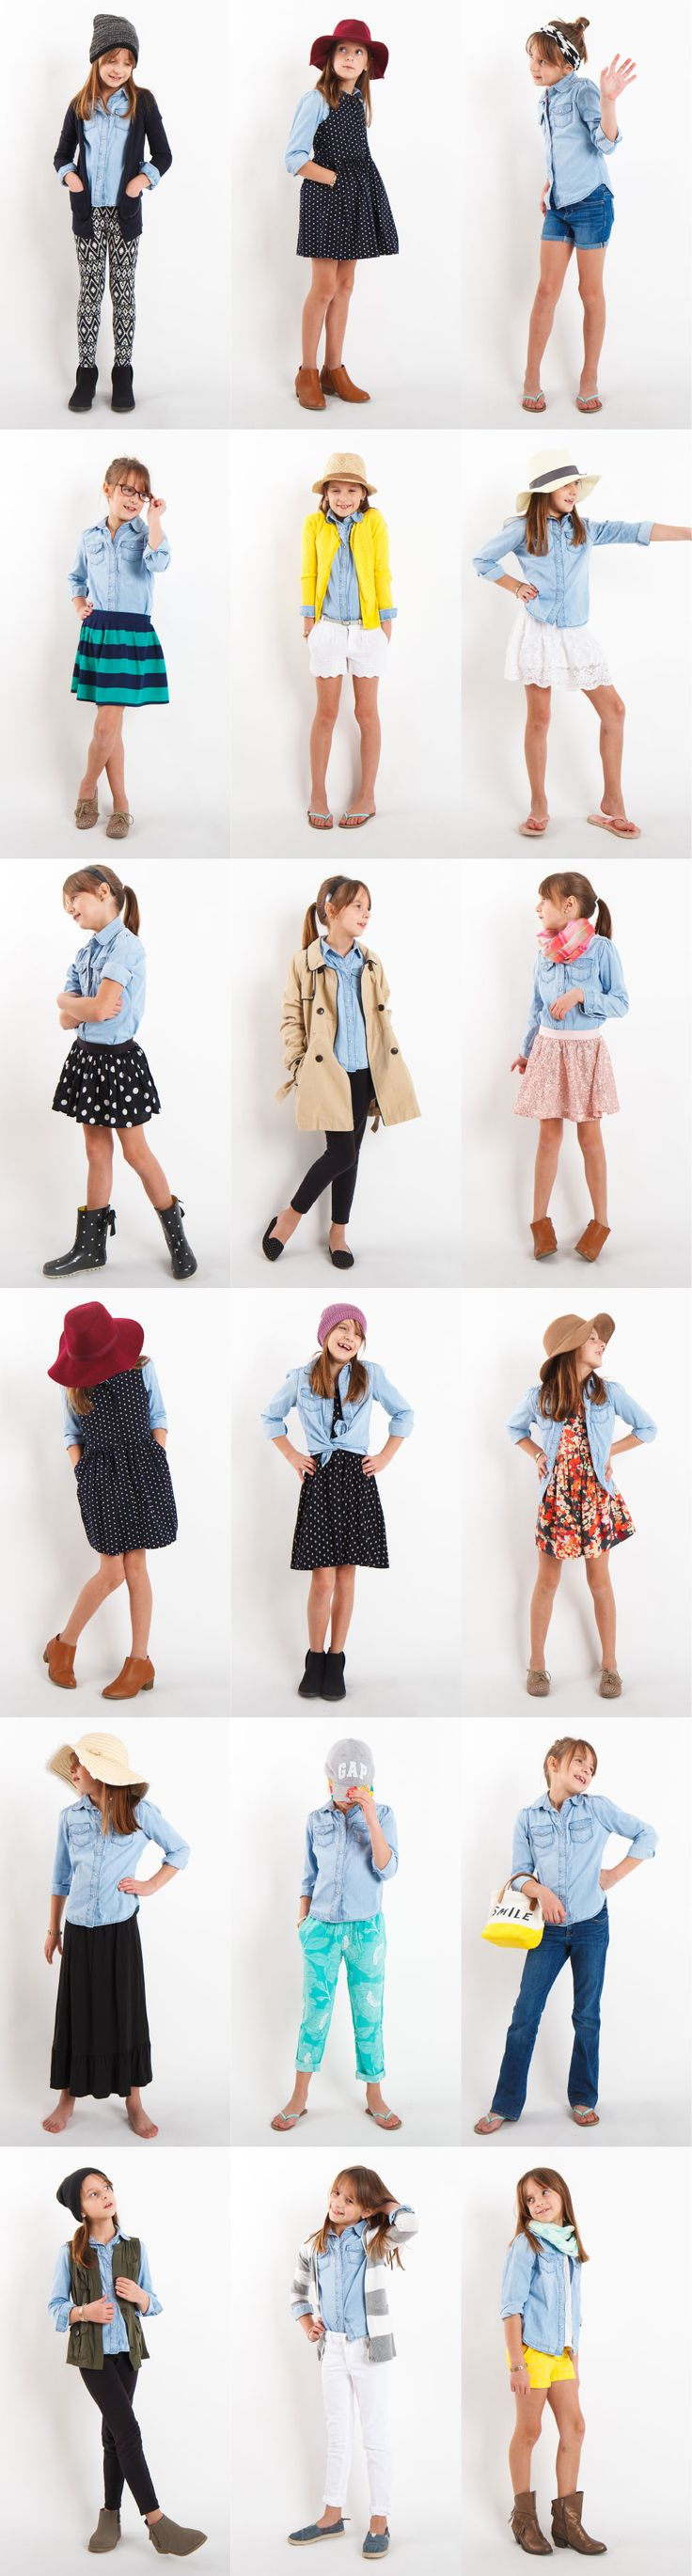 Alana's Chambray Shirt Project: 18 outfits with one chambray shirt!